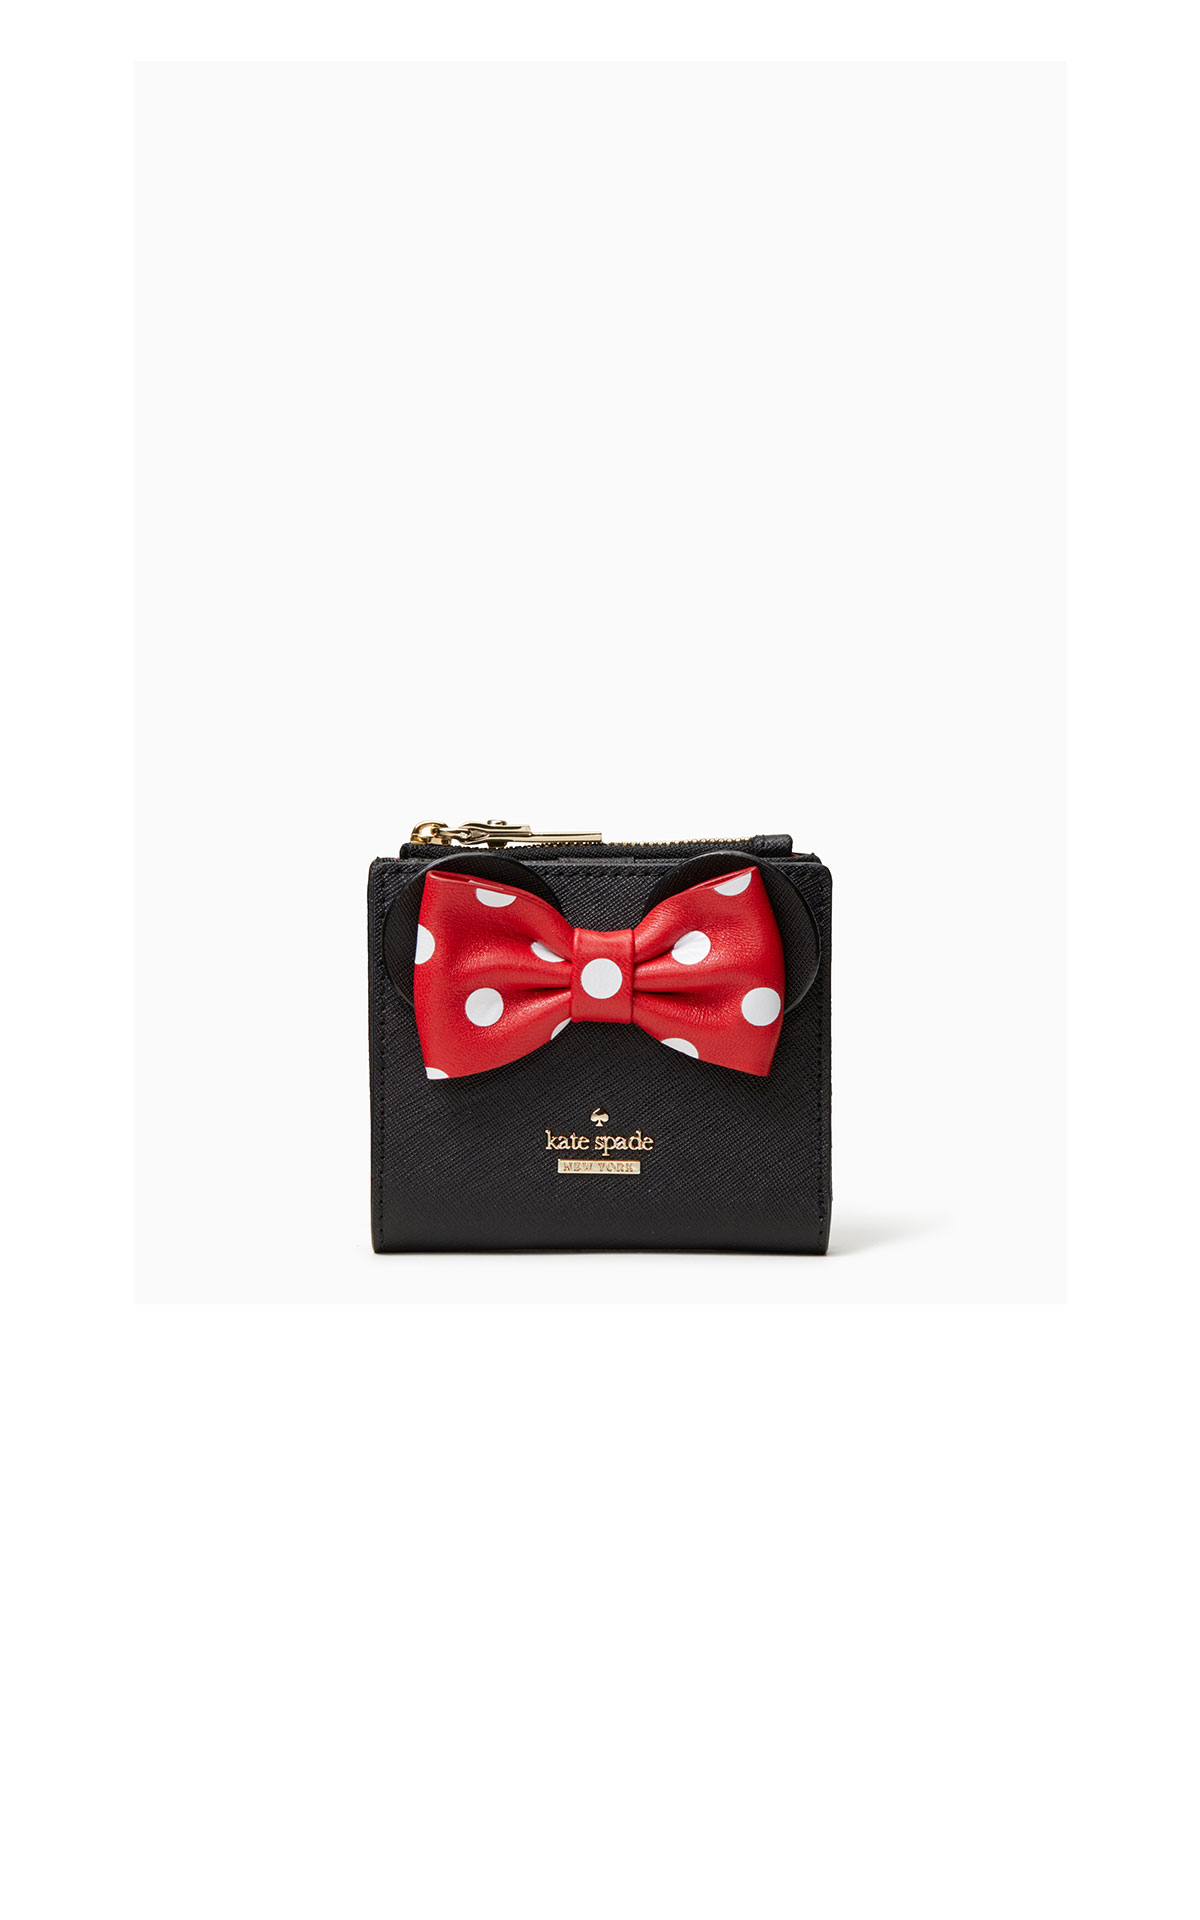 kate spade new york ksny x minnie mouse adalyn from Bicester Village